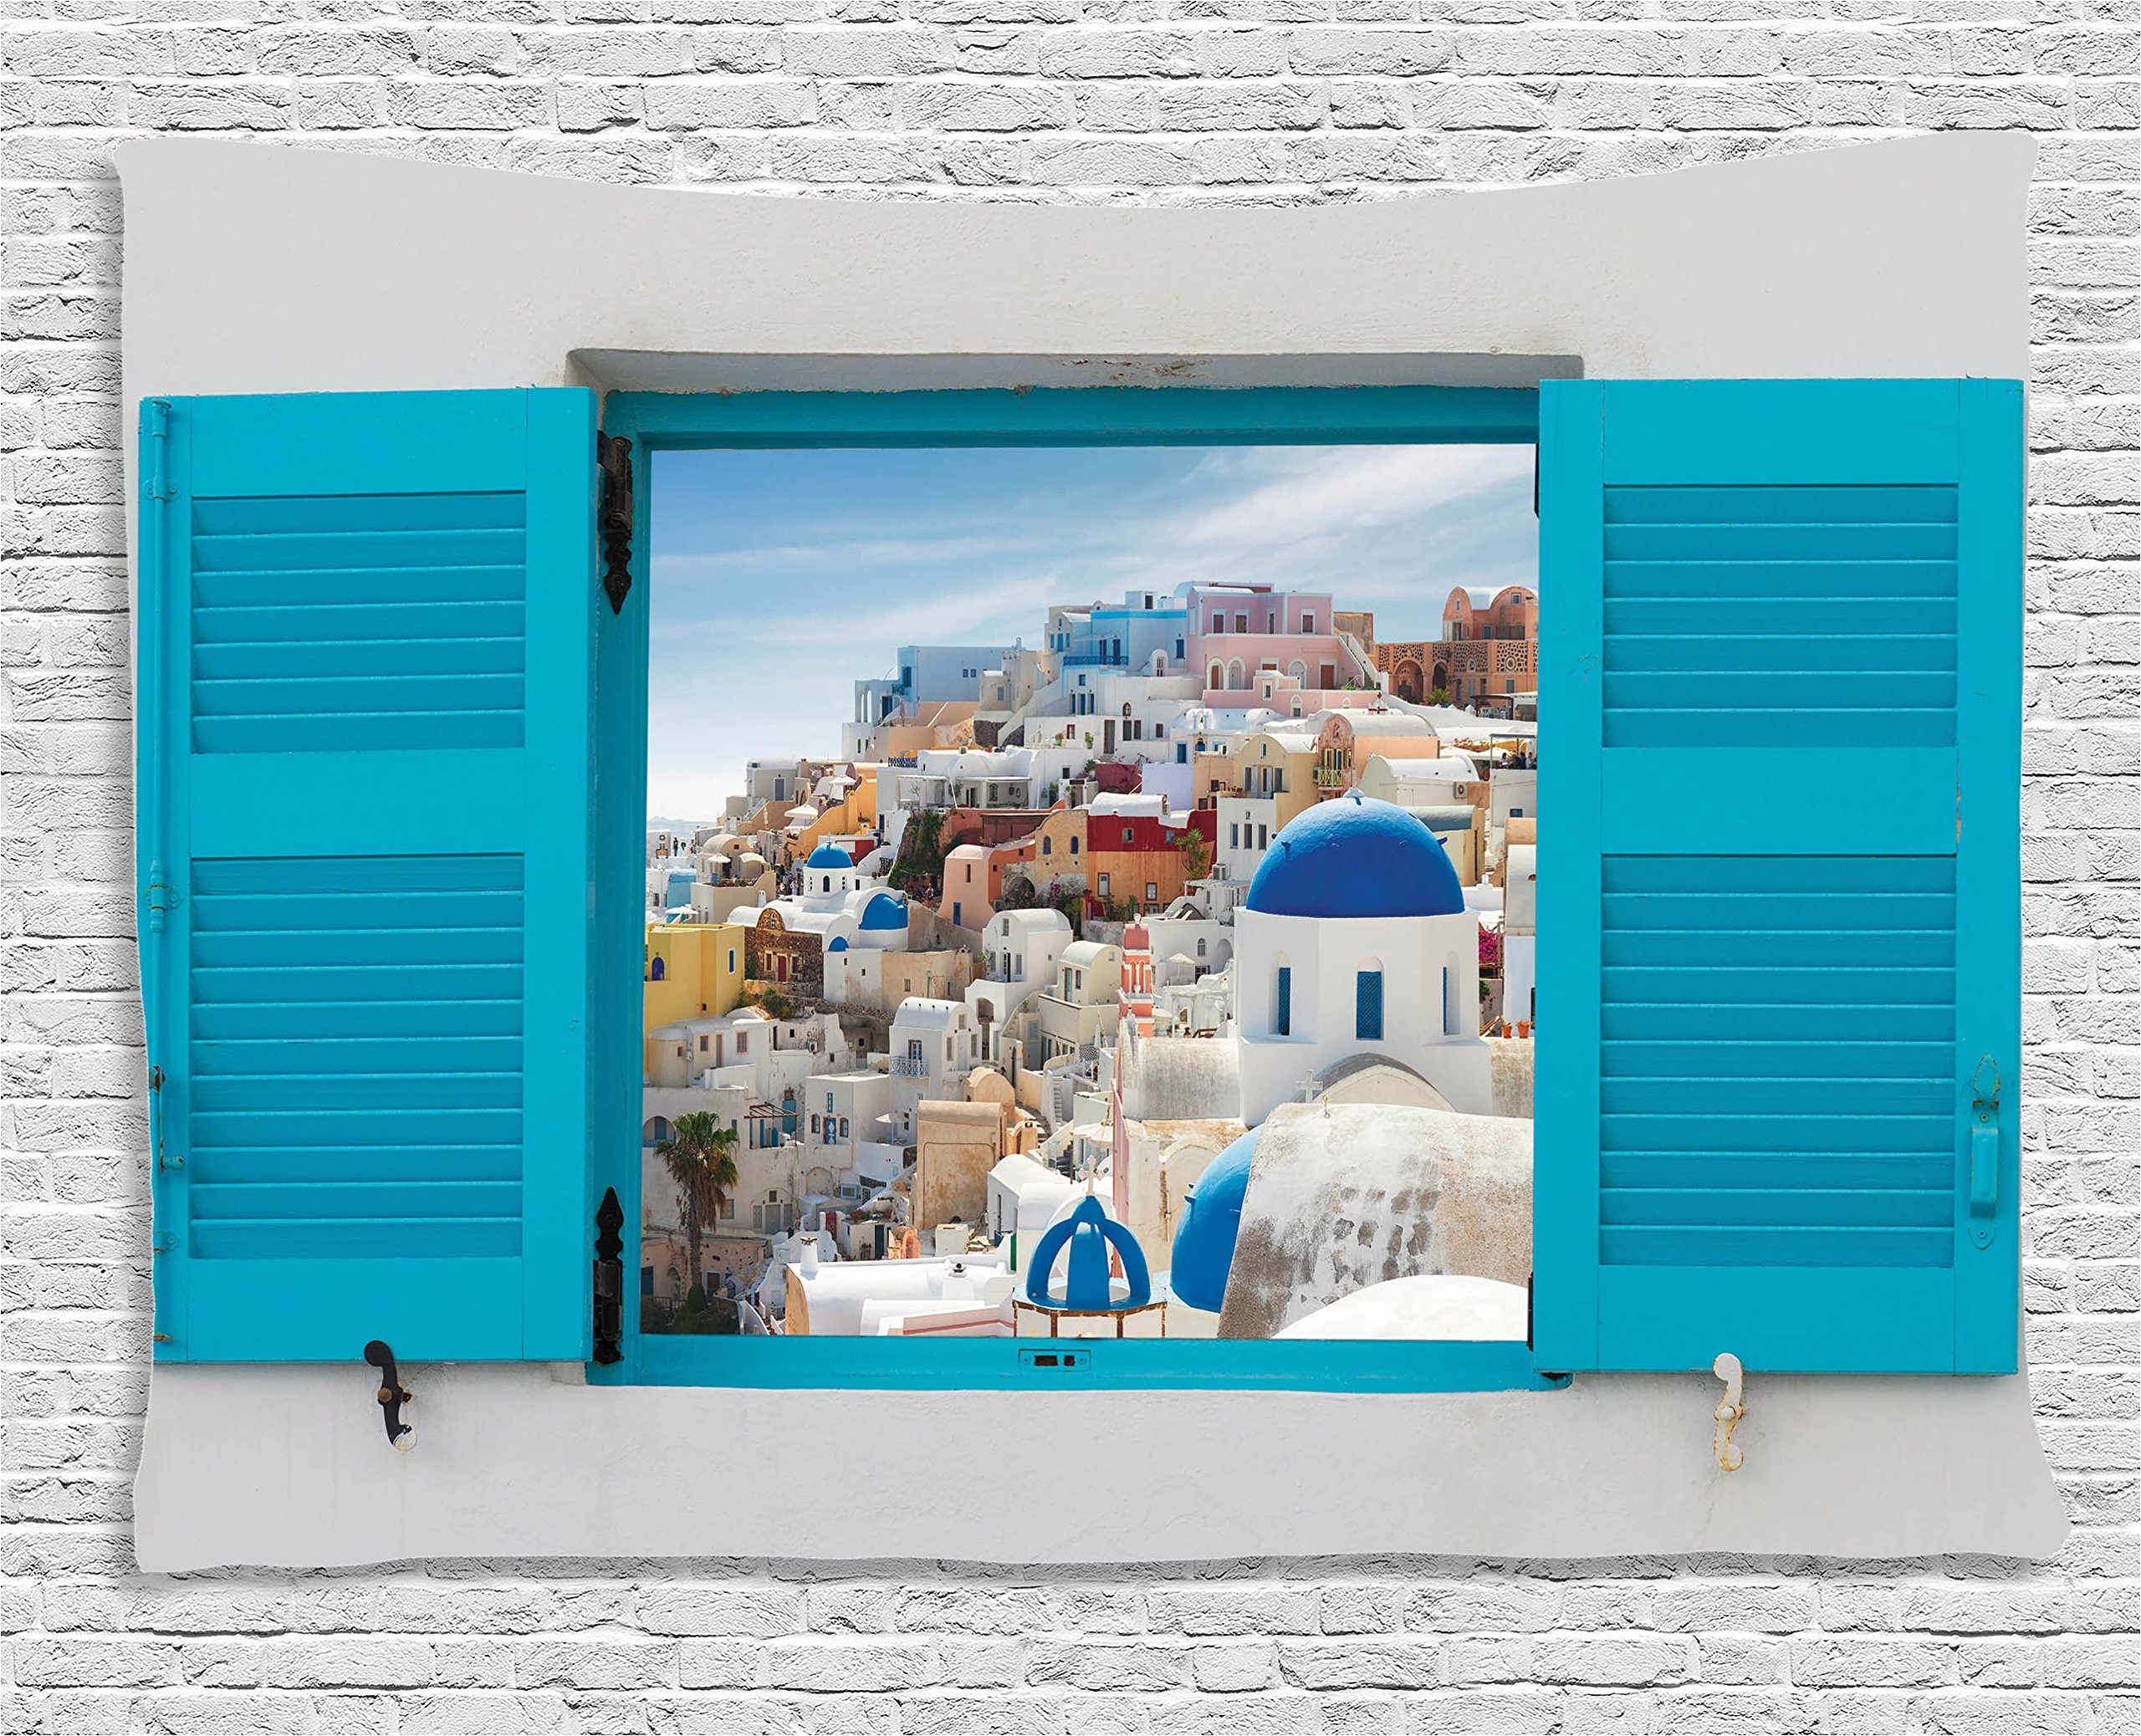 Ambesonne European Cityscape Tapestry Decor, Old Shutter Window with View of Traditional Greek Village Heritage Culture Deco, Wall Hanging for Bedroom Living Room Dorm, 80 X 60 Inches, Multi Color